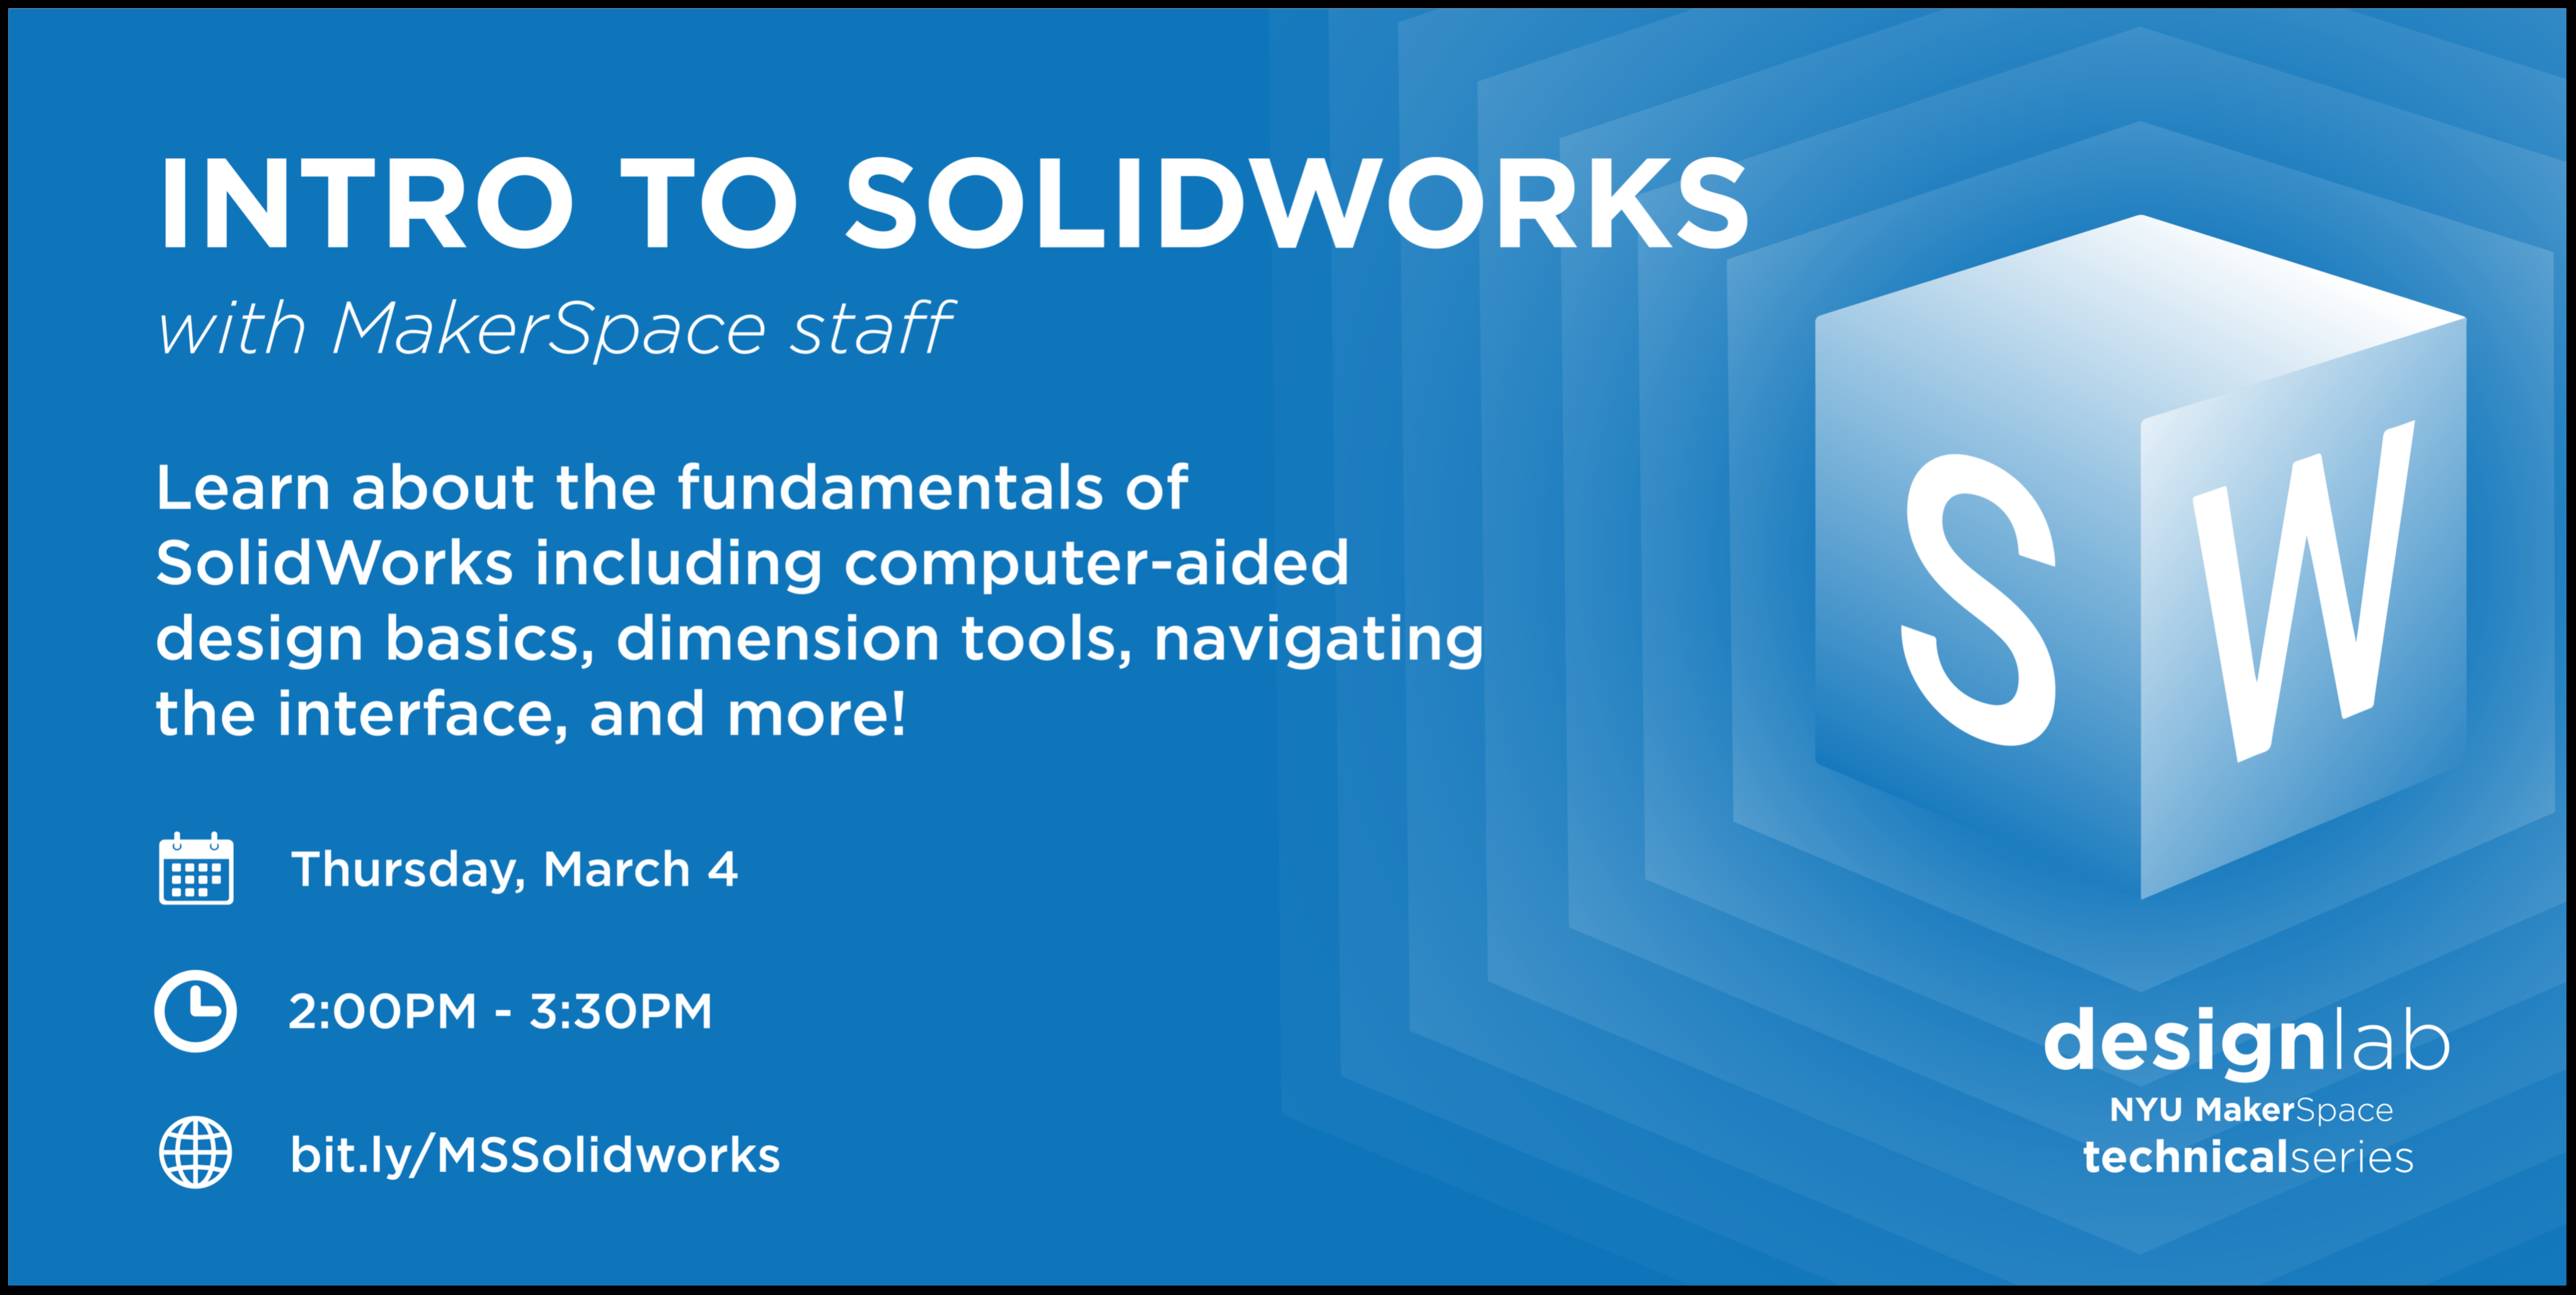 Intro to SoildWorks Flyer